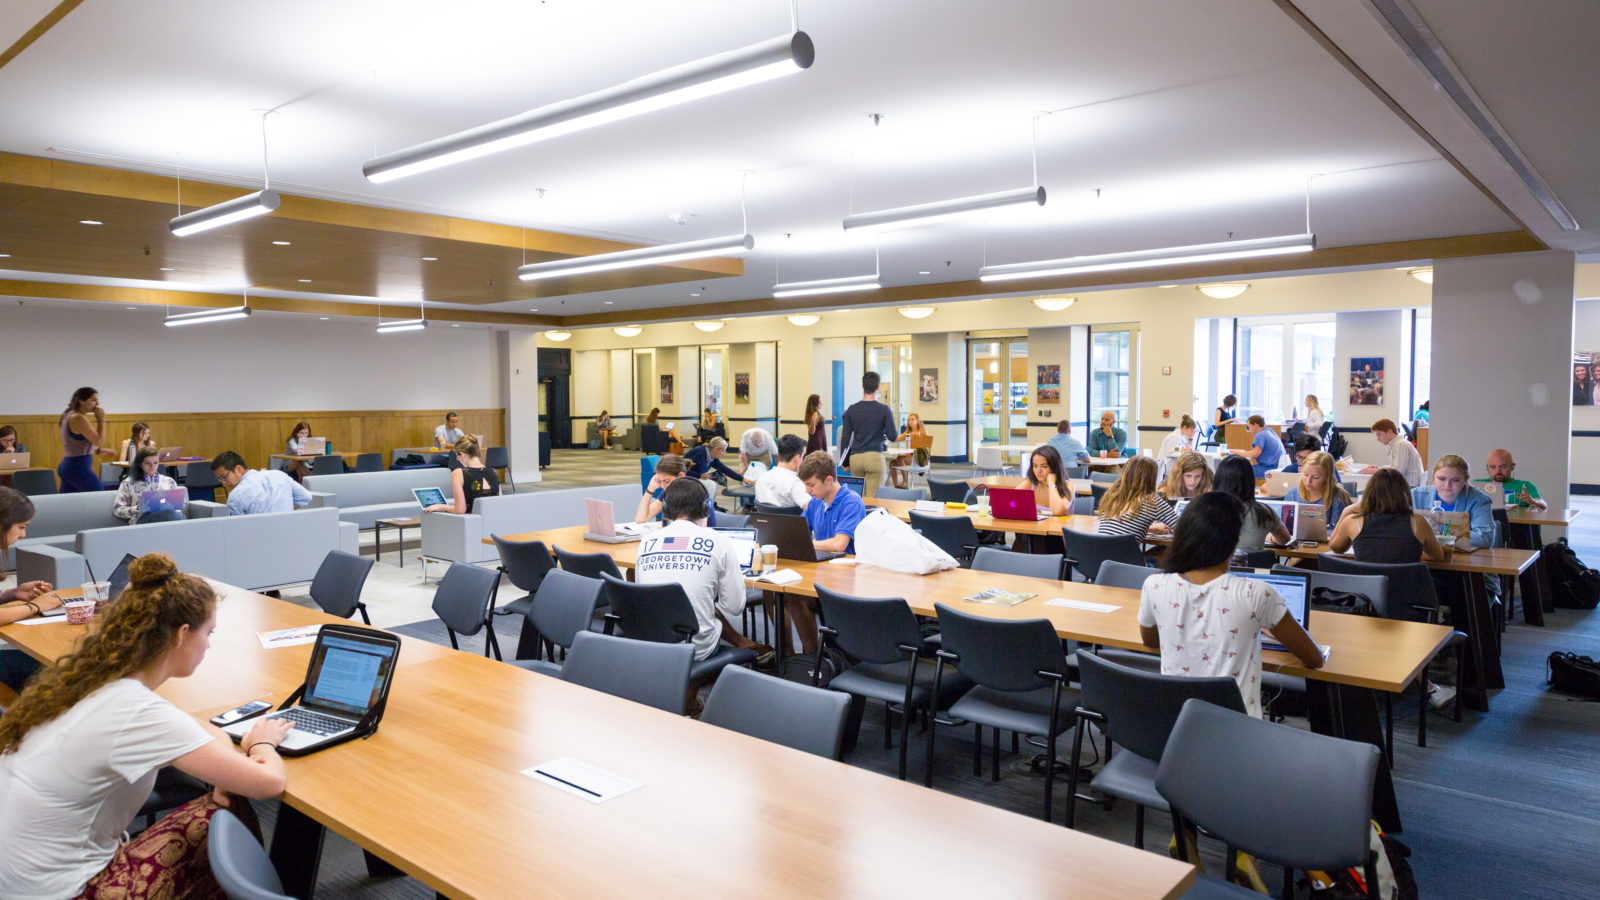 Students studying in Leavey Center.